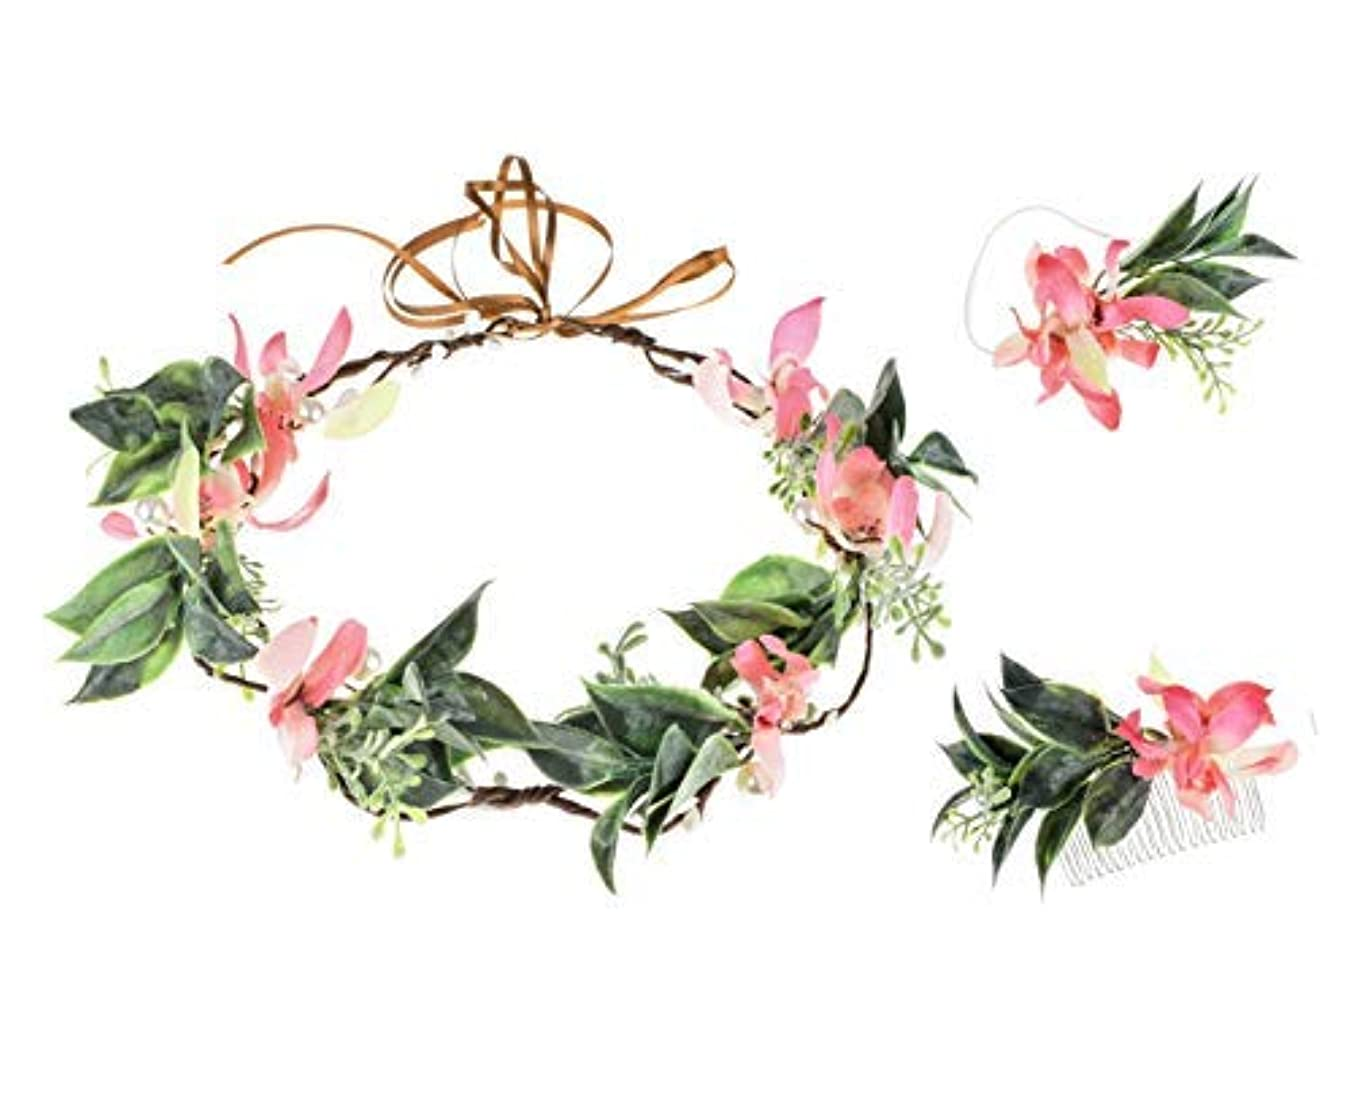 リンクメダル推測Floral Fall Butterfly Orchid Flower Crown Hair Comb Green Leaf Wreath Bridal Wrist Flower Maternity Photo Props...